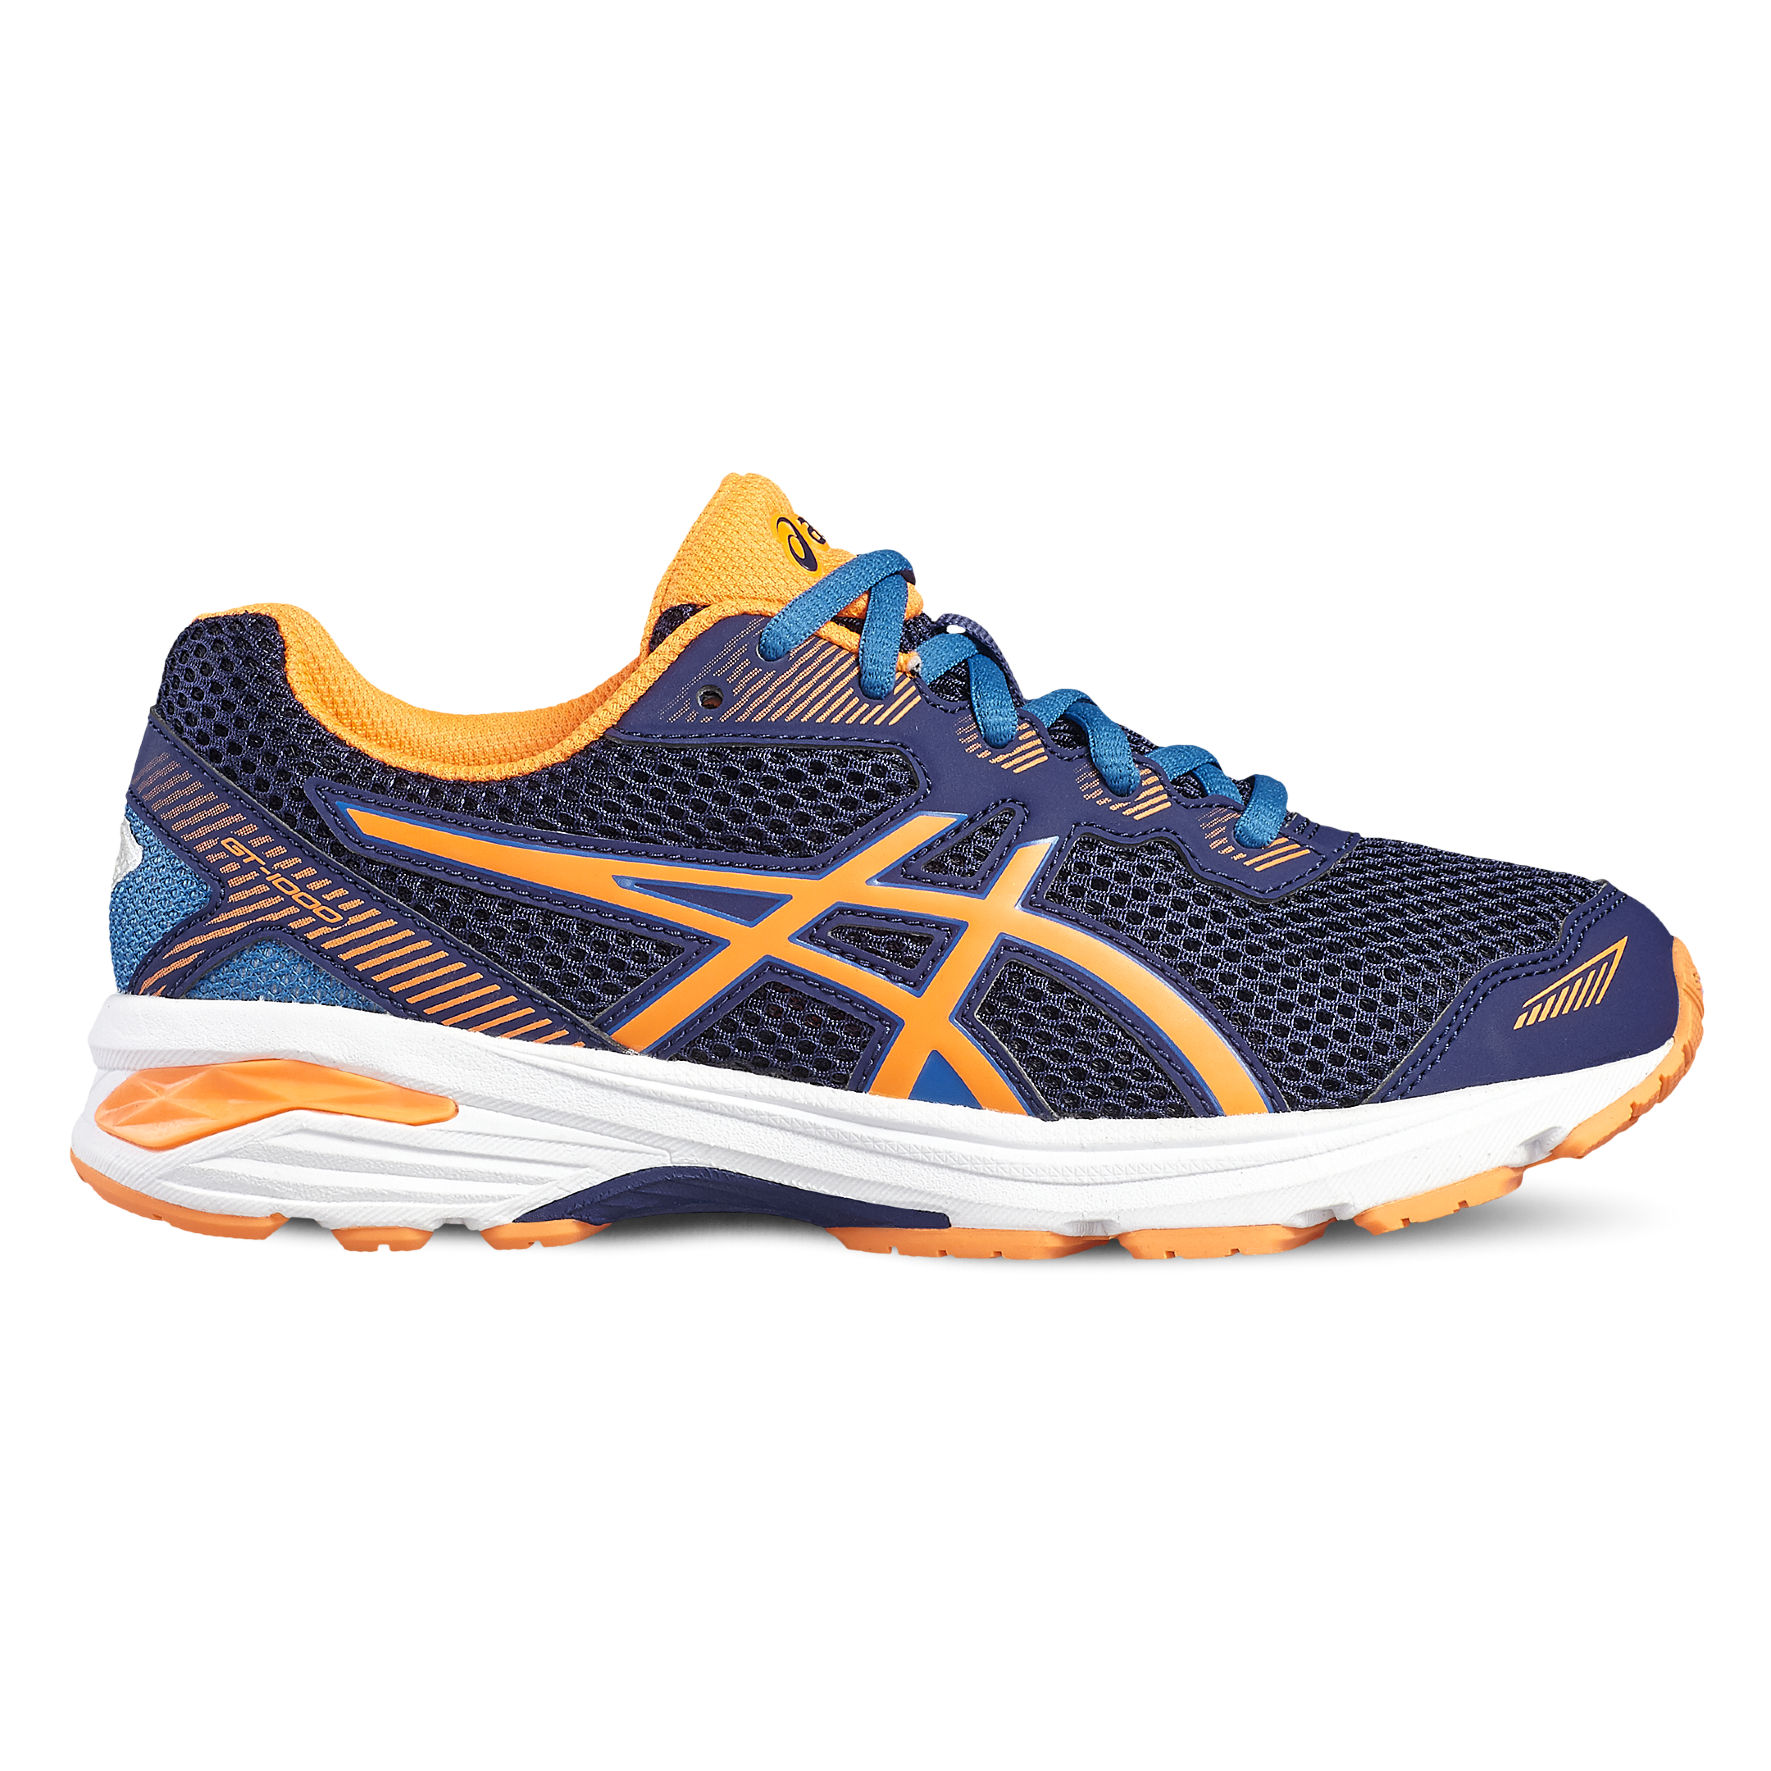 Asics GT-1000 5 GS in Blau Orange